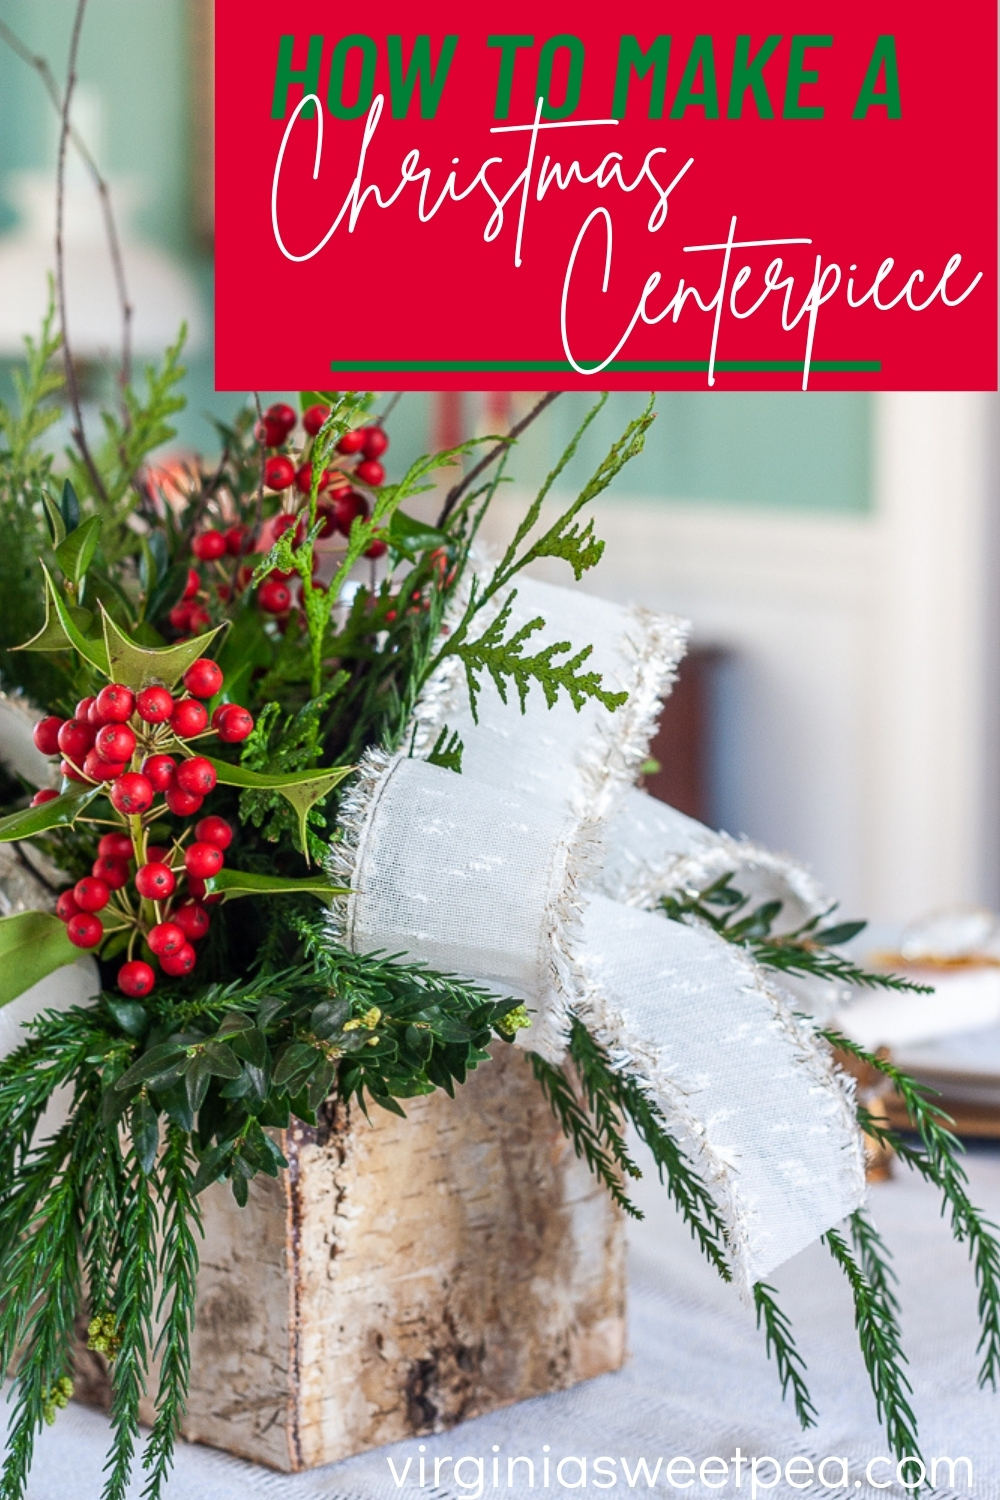 Instead of ordering an expensive centerpiece from a florist, learn how to make your own Christmas centerpiece using this easy to follow tutorial. via @spaula